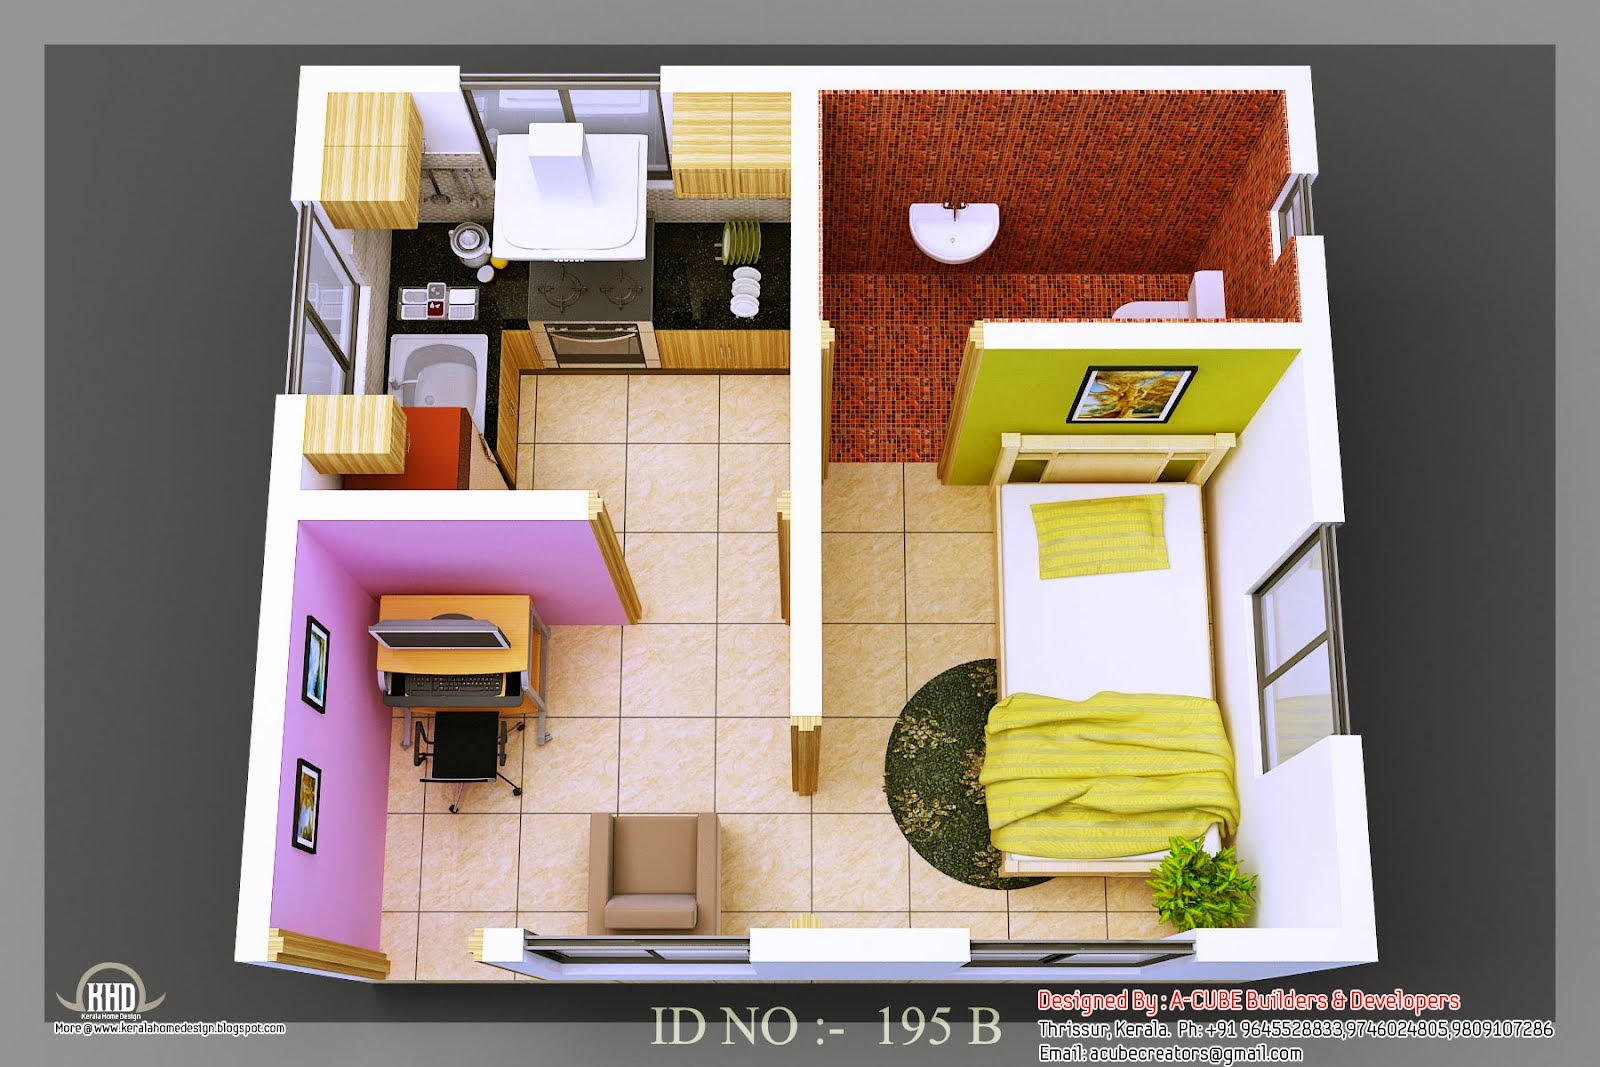 home design plans for a small home - Small Home Design Ideas